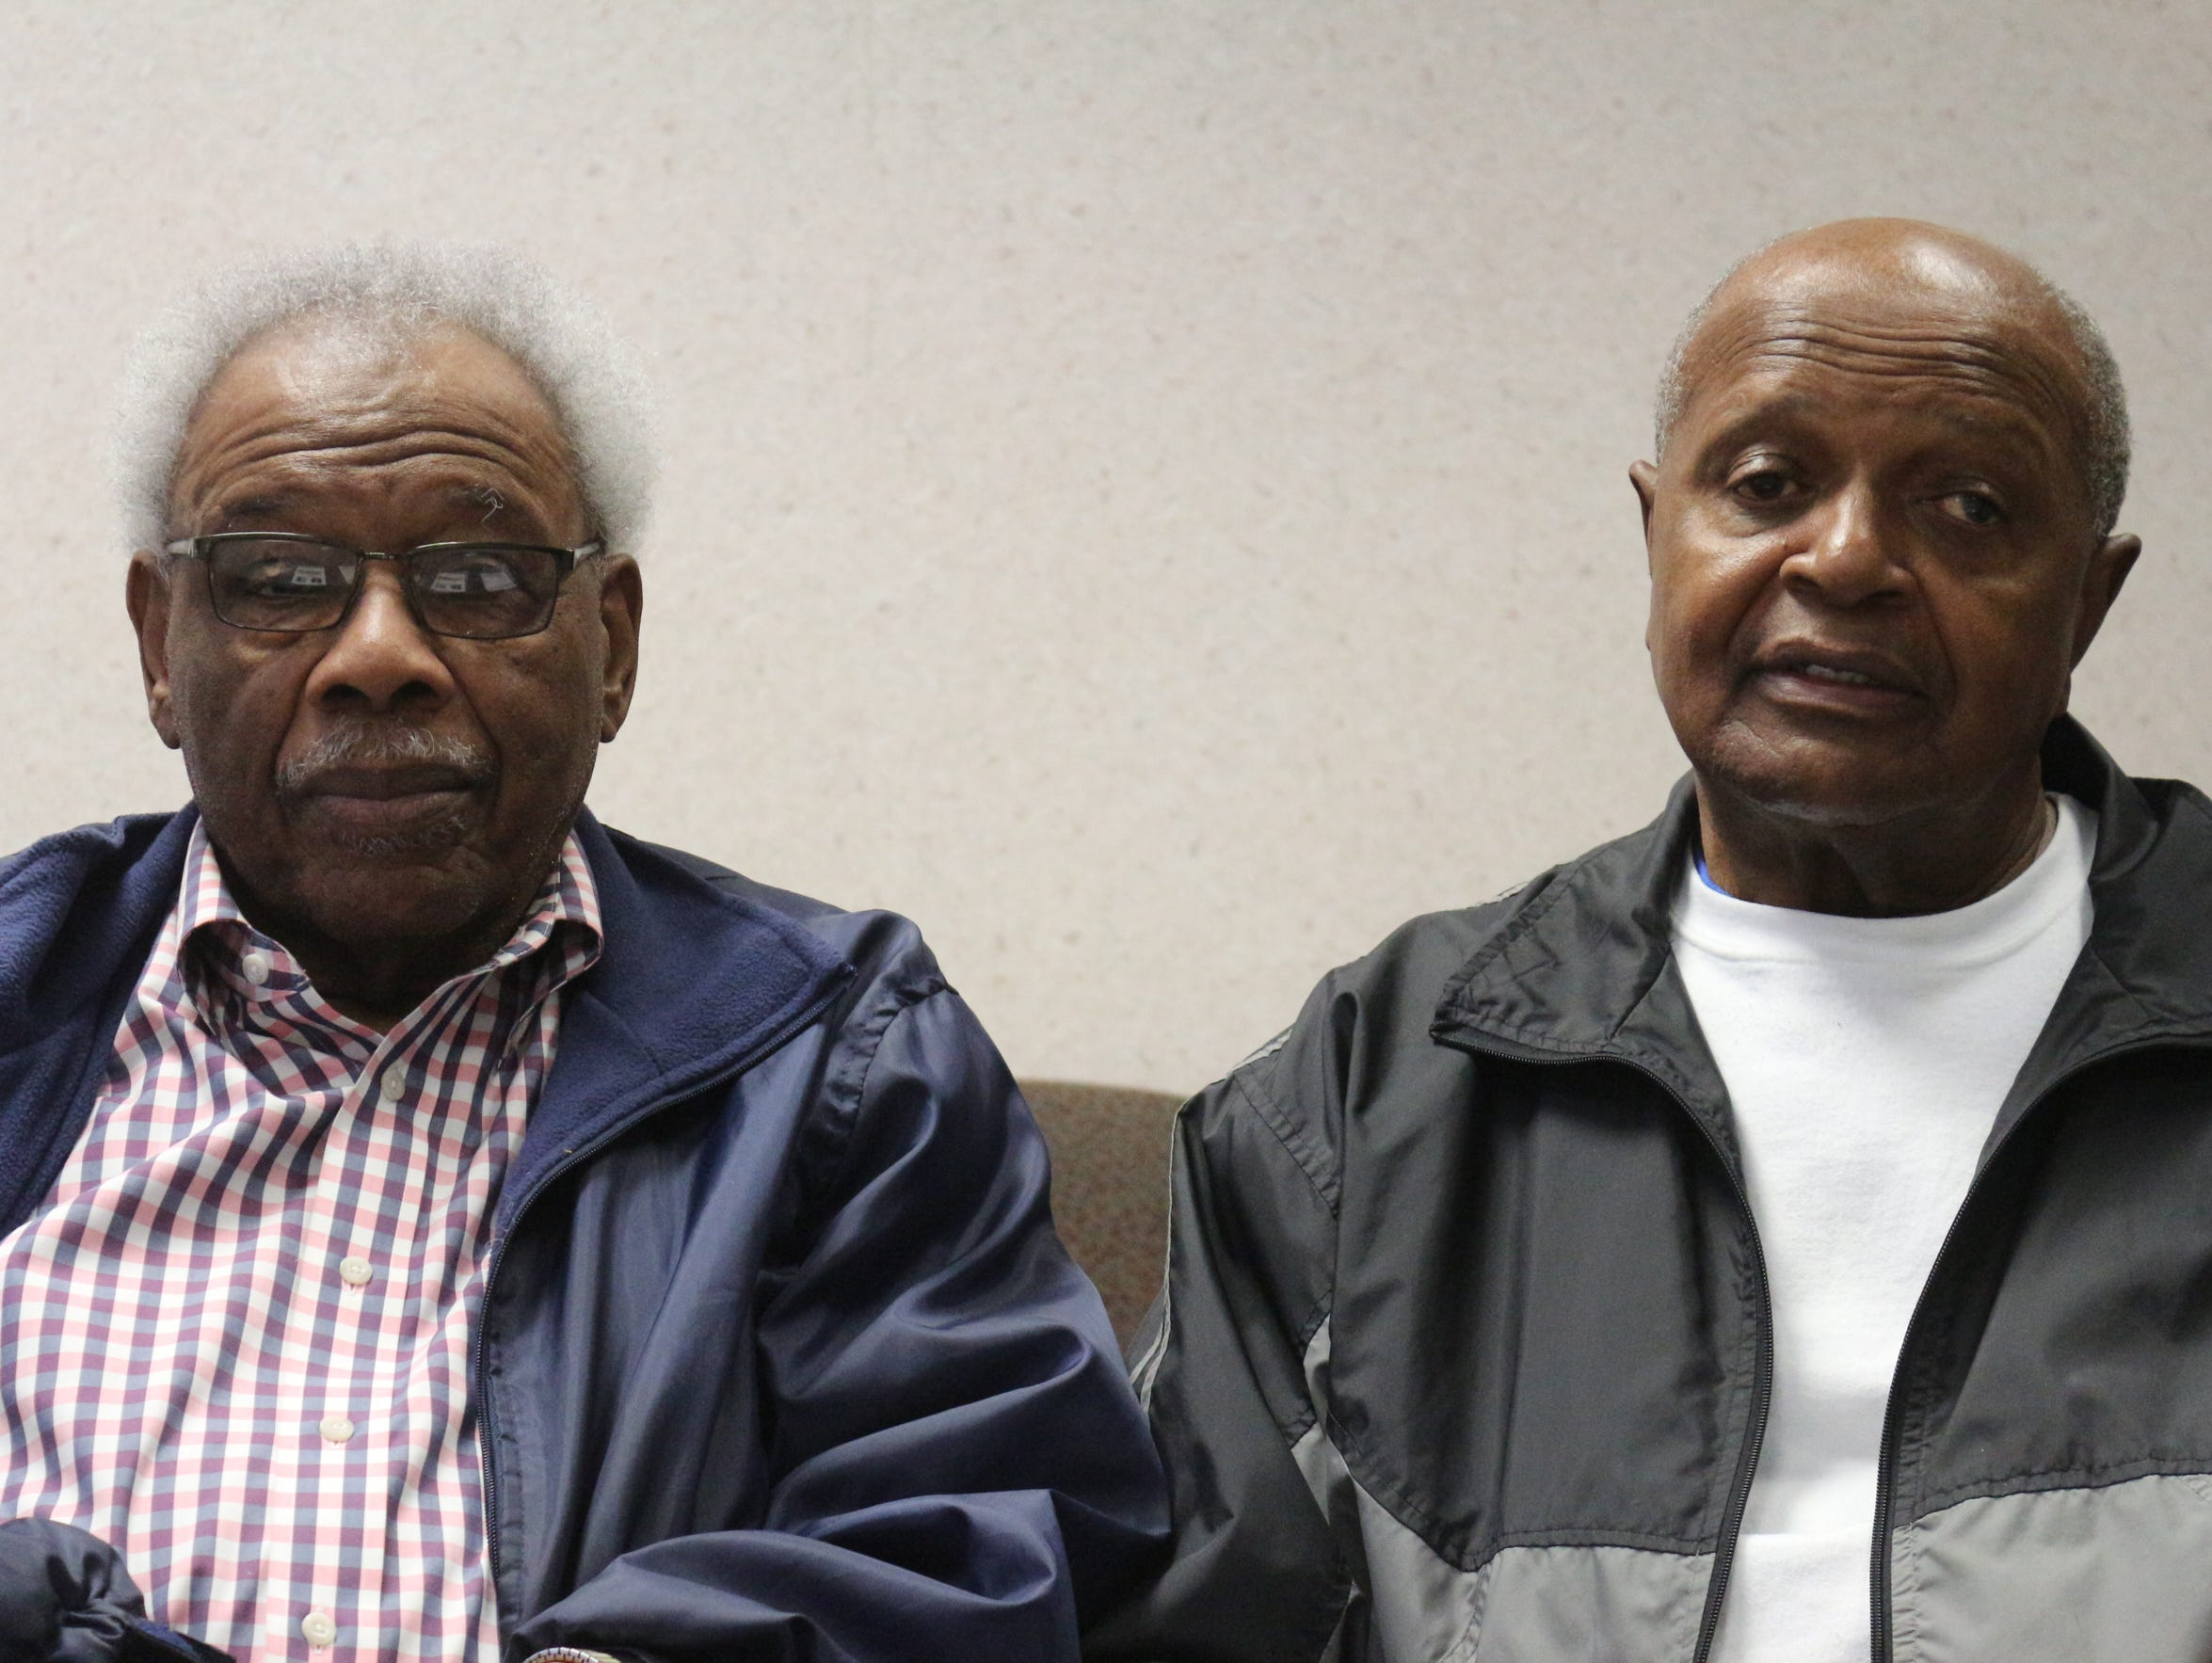 Joseph Roberts, left, and Hyburnia Williams both attended